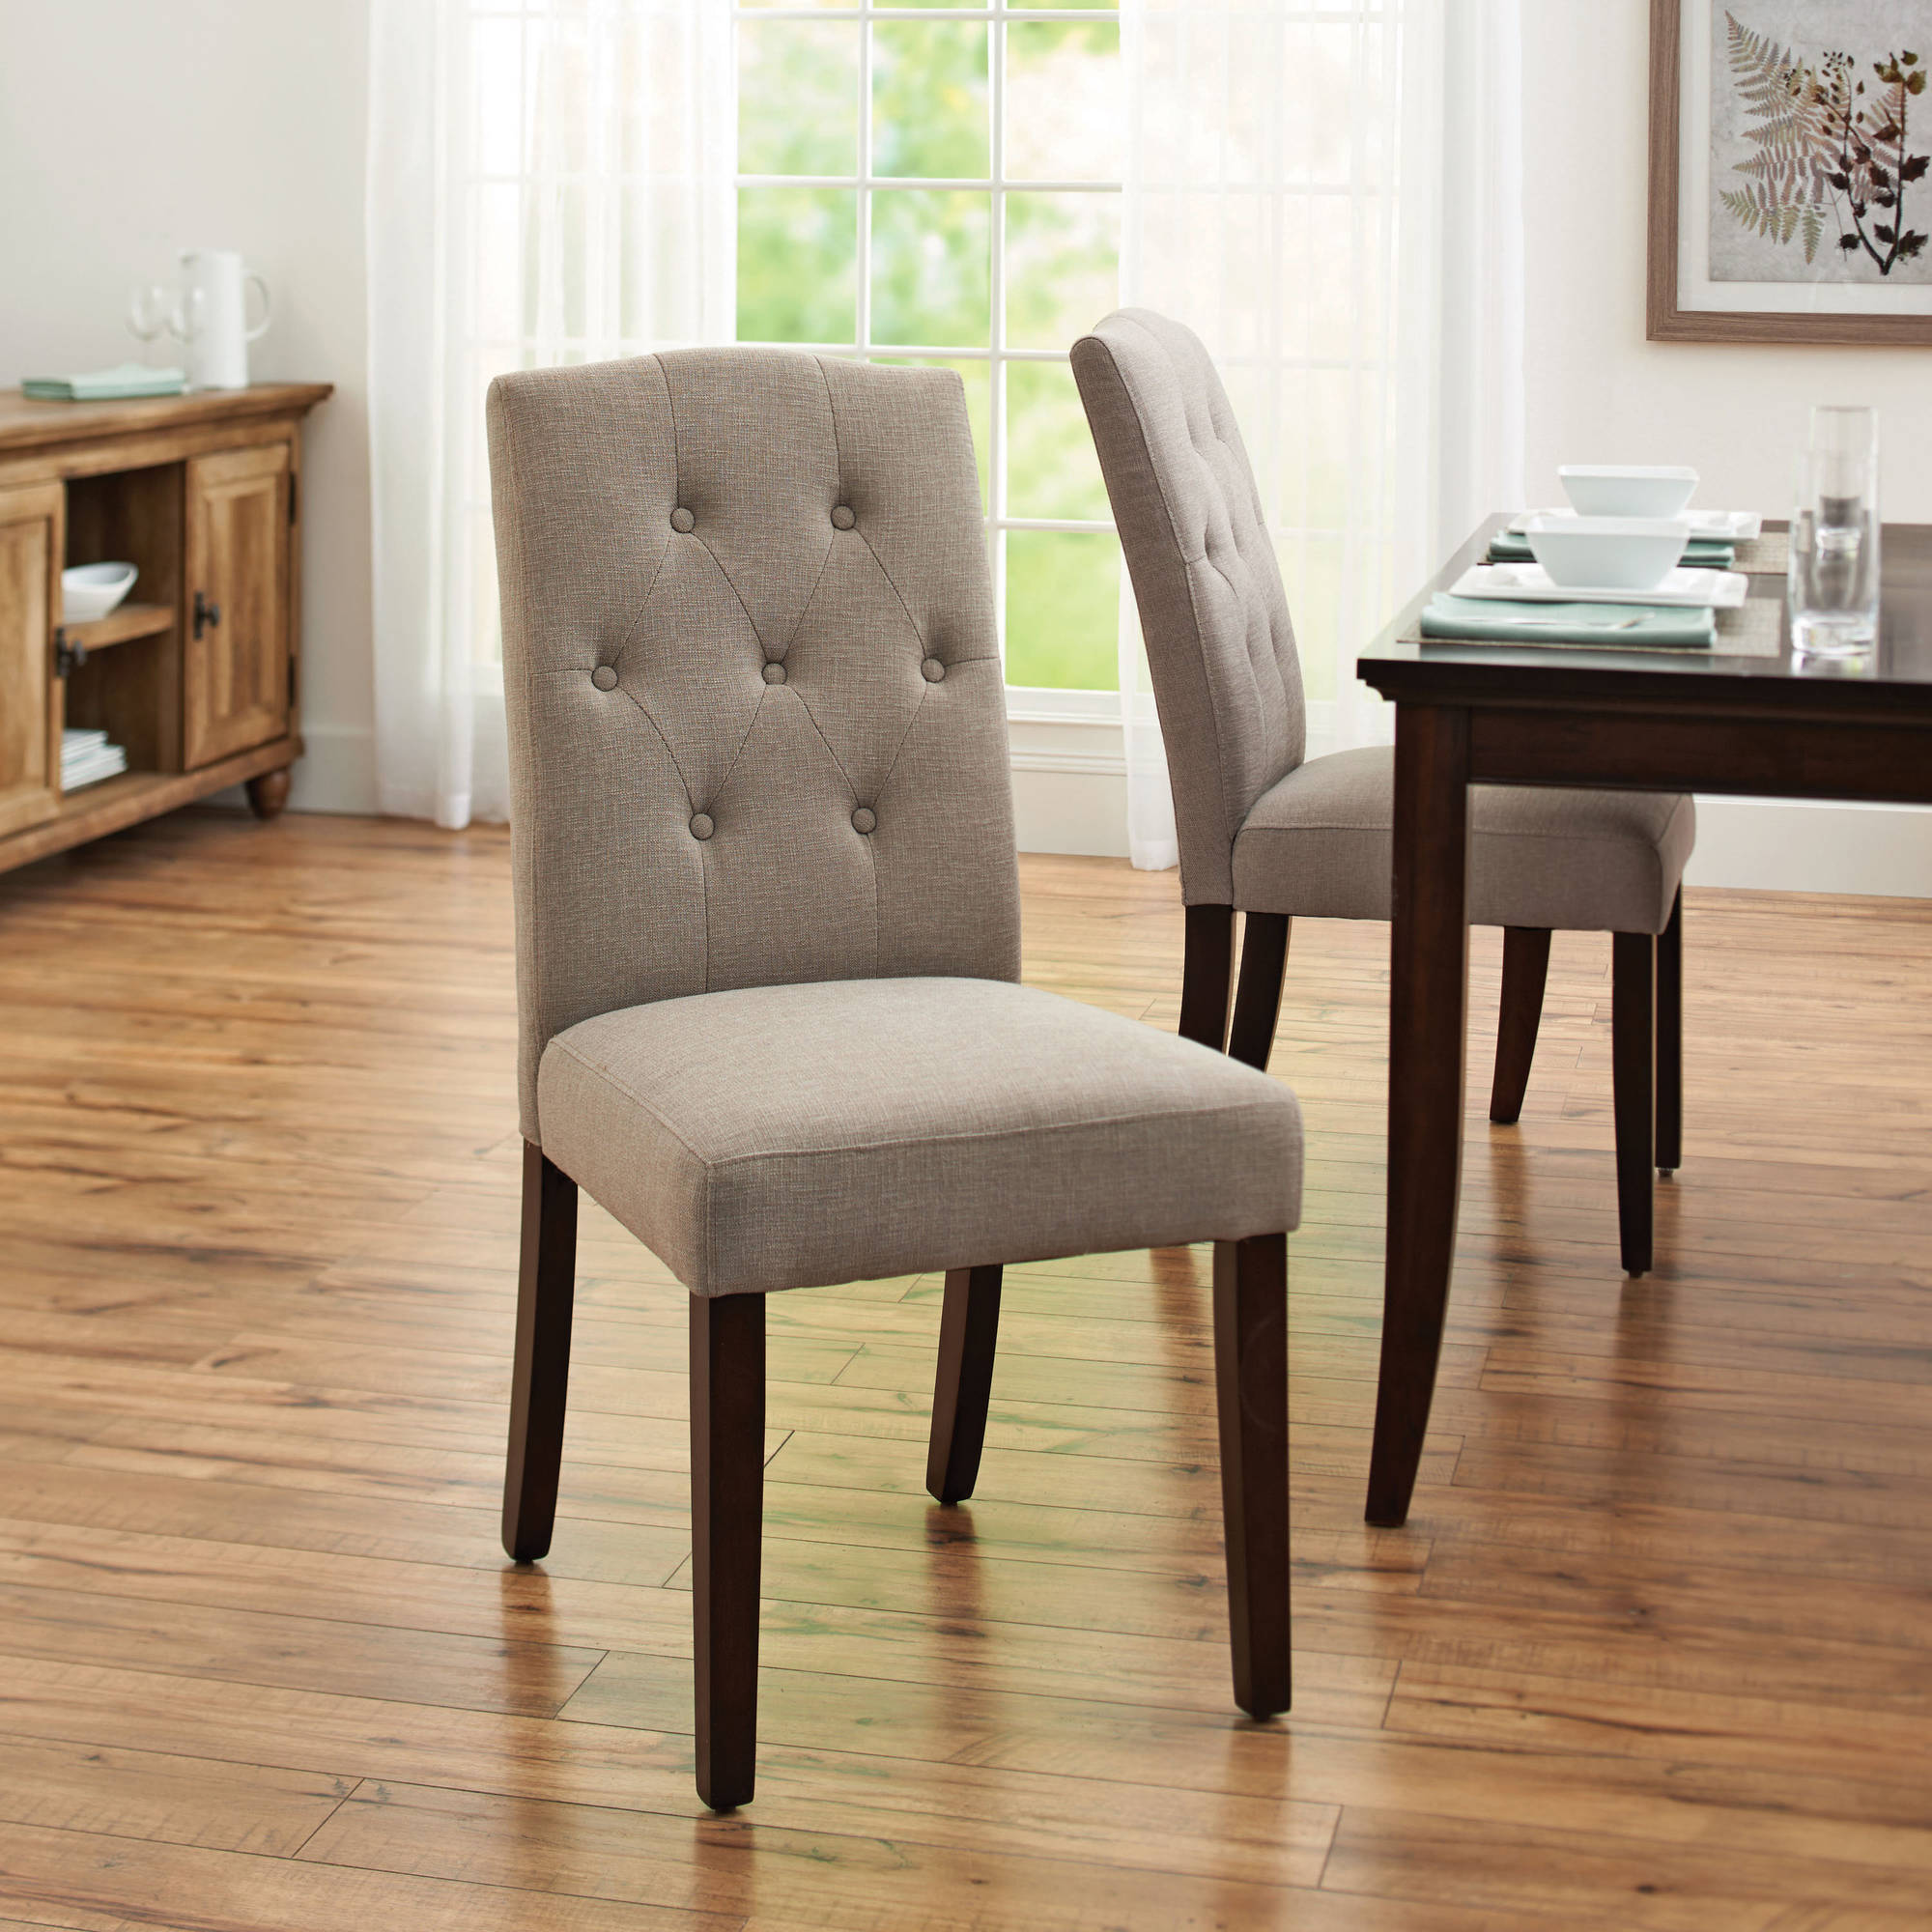 Better Homes and Gardens Parsons Tufted Dining Chair  Taupe. Better Homes and Gardens 5 Piece Dining Set with Upholstered